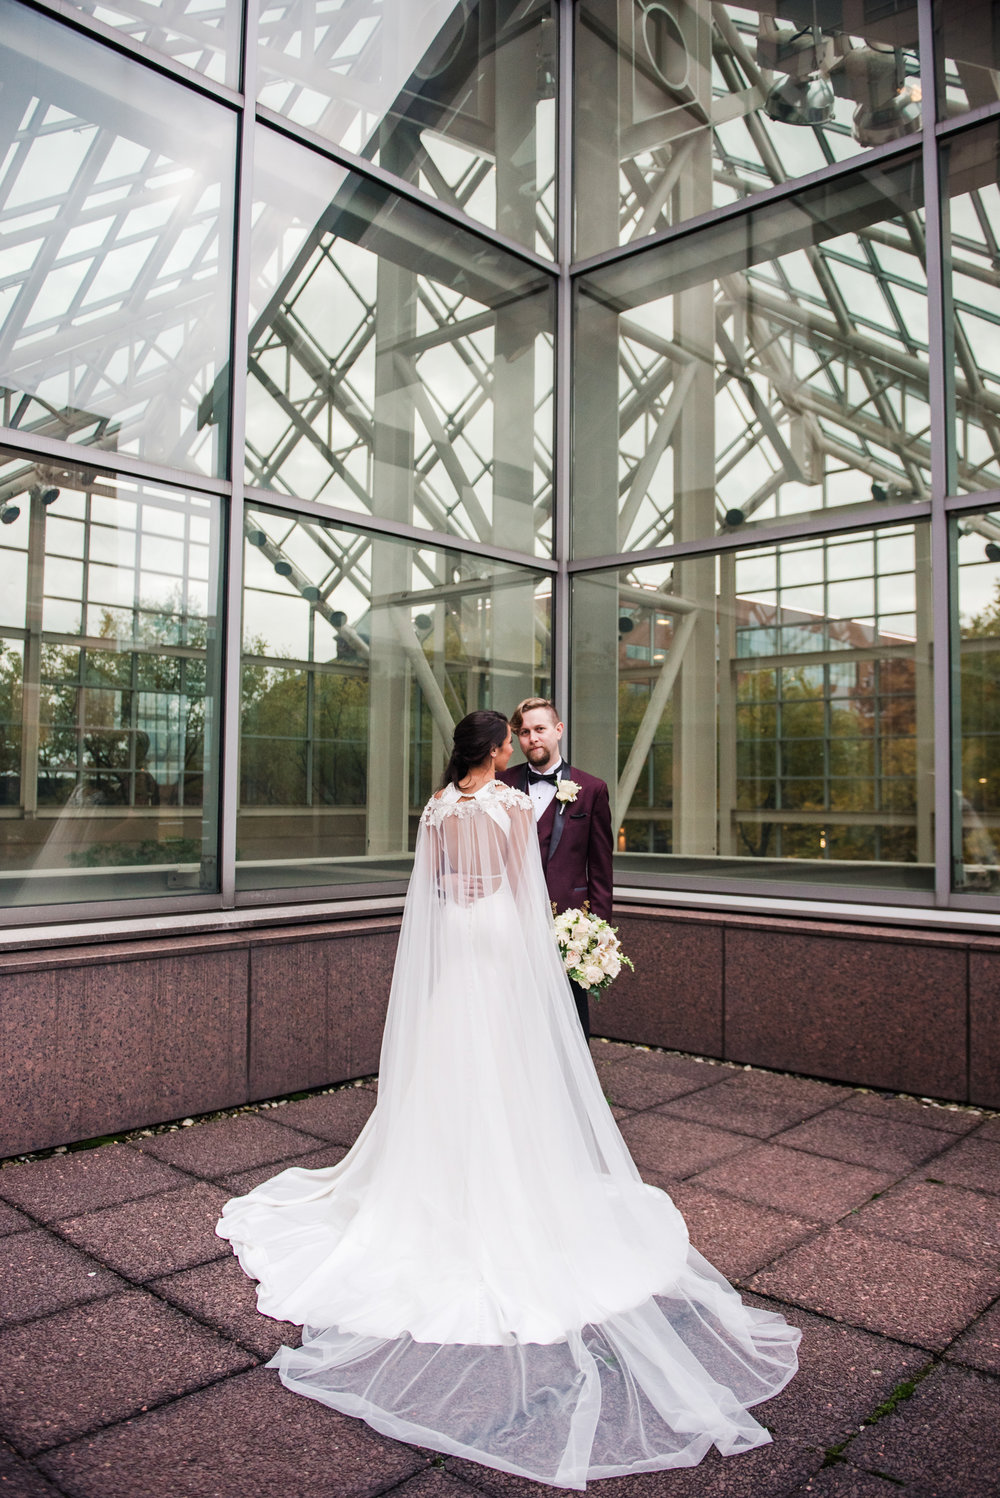 Wintergarden_by_Monroes_Rochester_Wedding_JILL_STUDIO_Rochester_NY_Photographer_174401.jpg